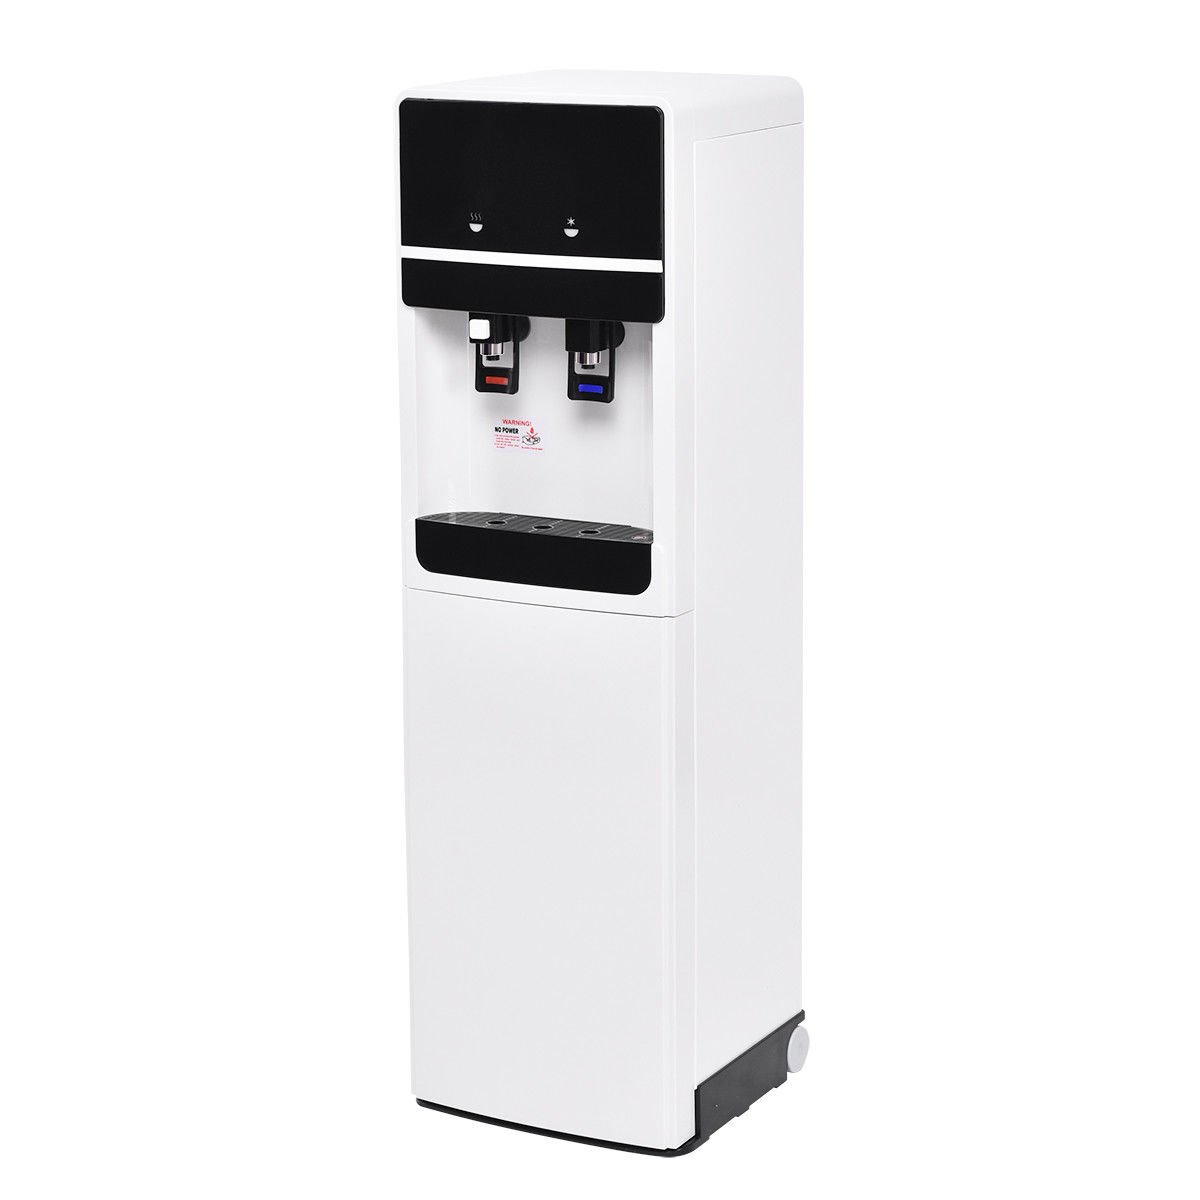 Costway Bottom Loading Water Cooler Dispenser Underlying Stainless Steel Water Cooler Dispenser Cold Hot 5 Gallon Home Office by COSTWAY (Image #4)